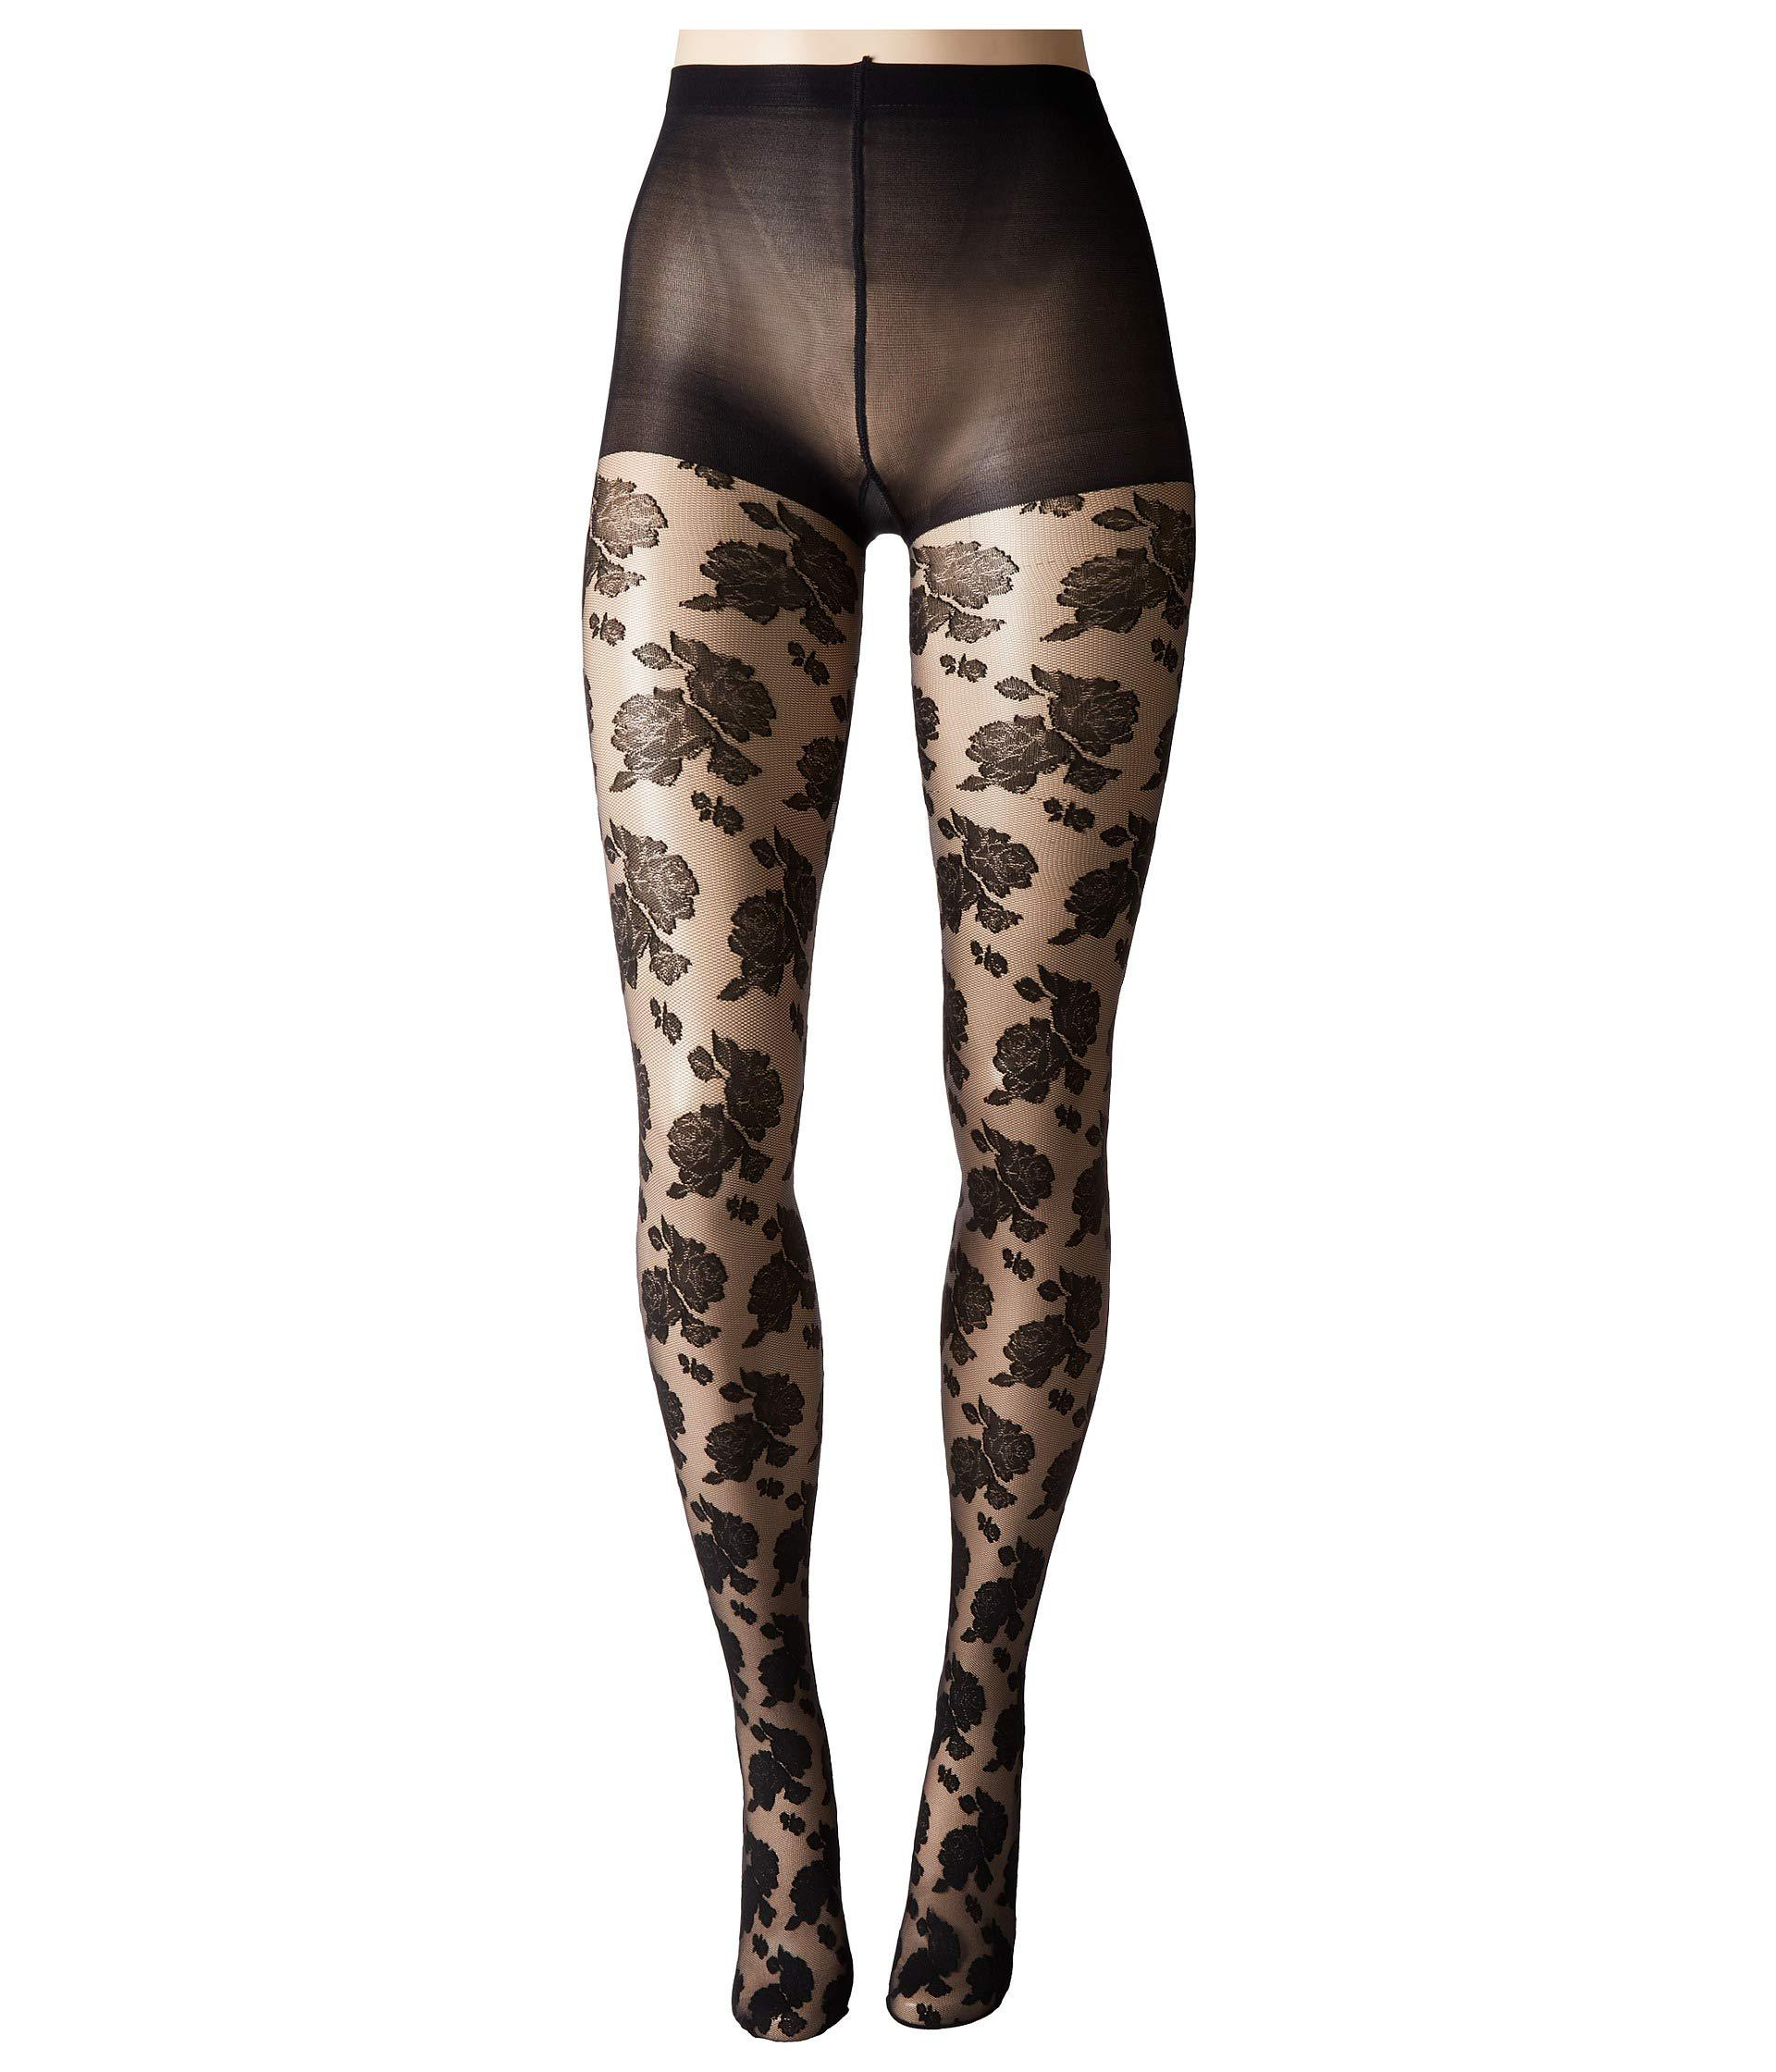 f53795deeca Hue Sheer Floral Lace Tights With Control Top (black) Control Top ...